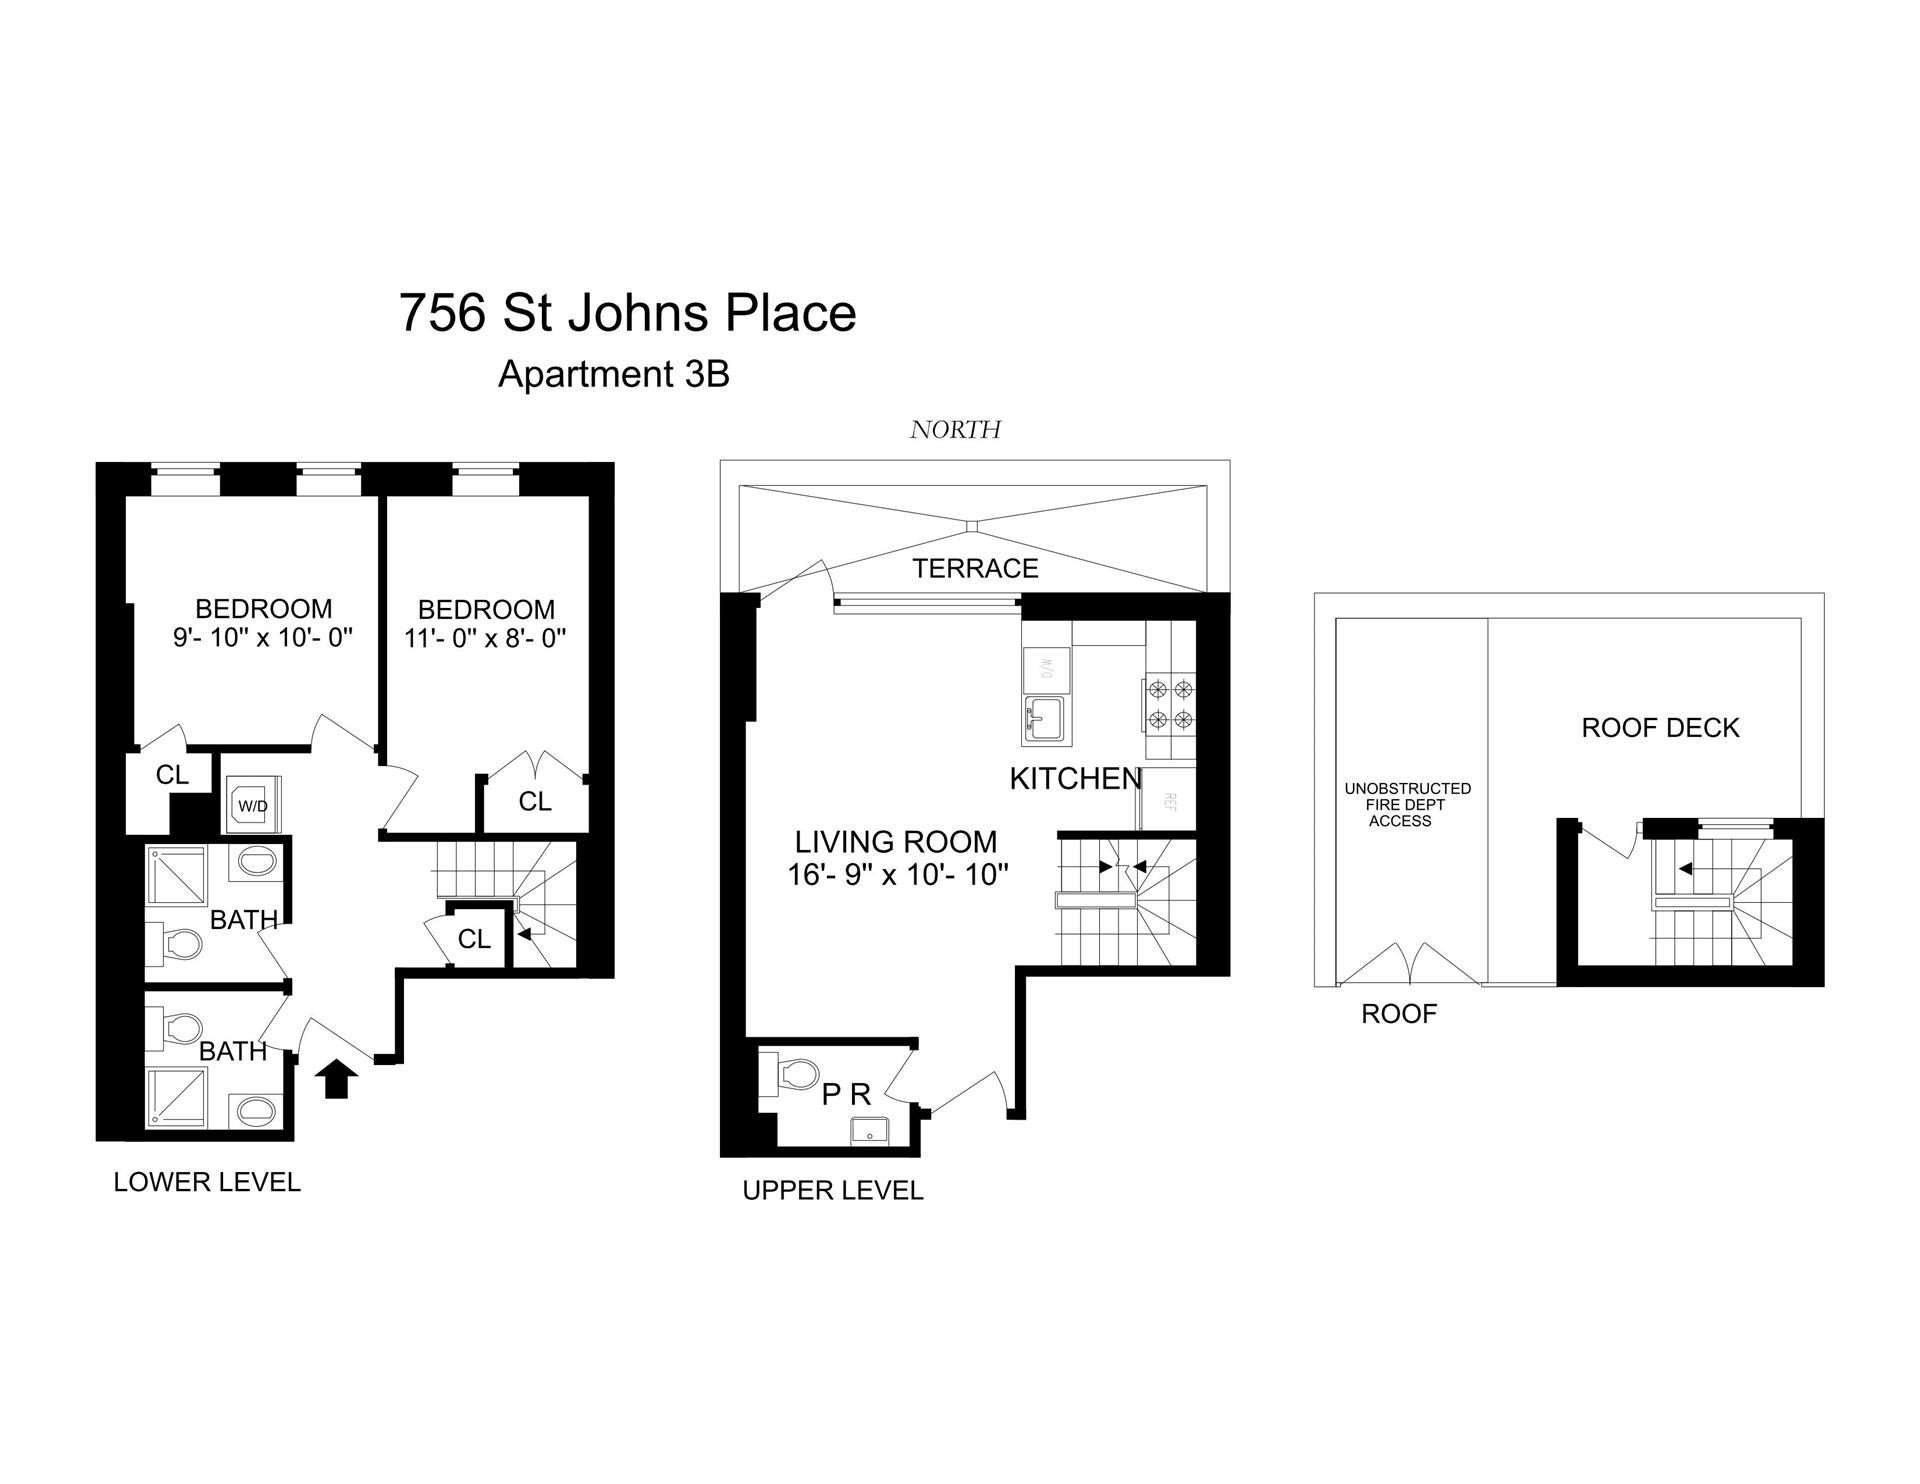 Floor plan of 756 St Johns Pl, 3B - Crown Heights, New York